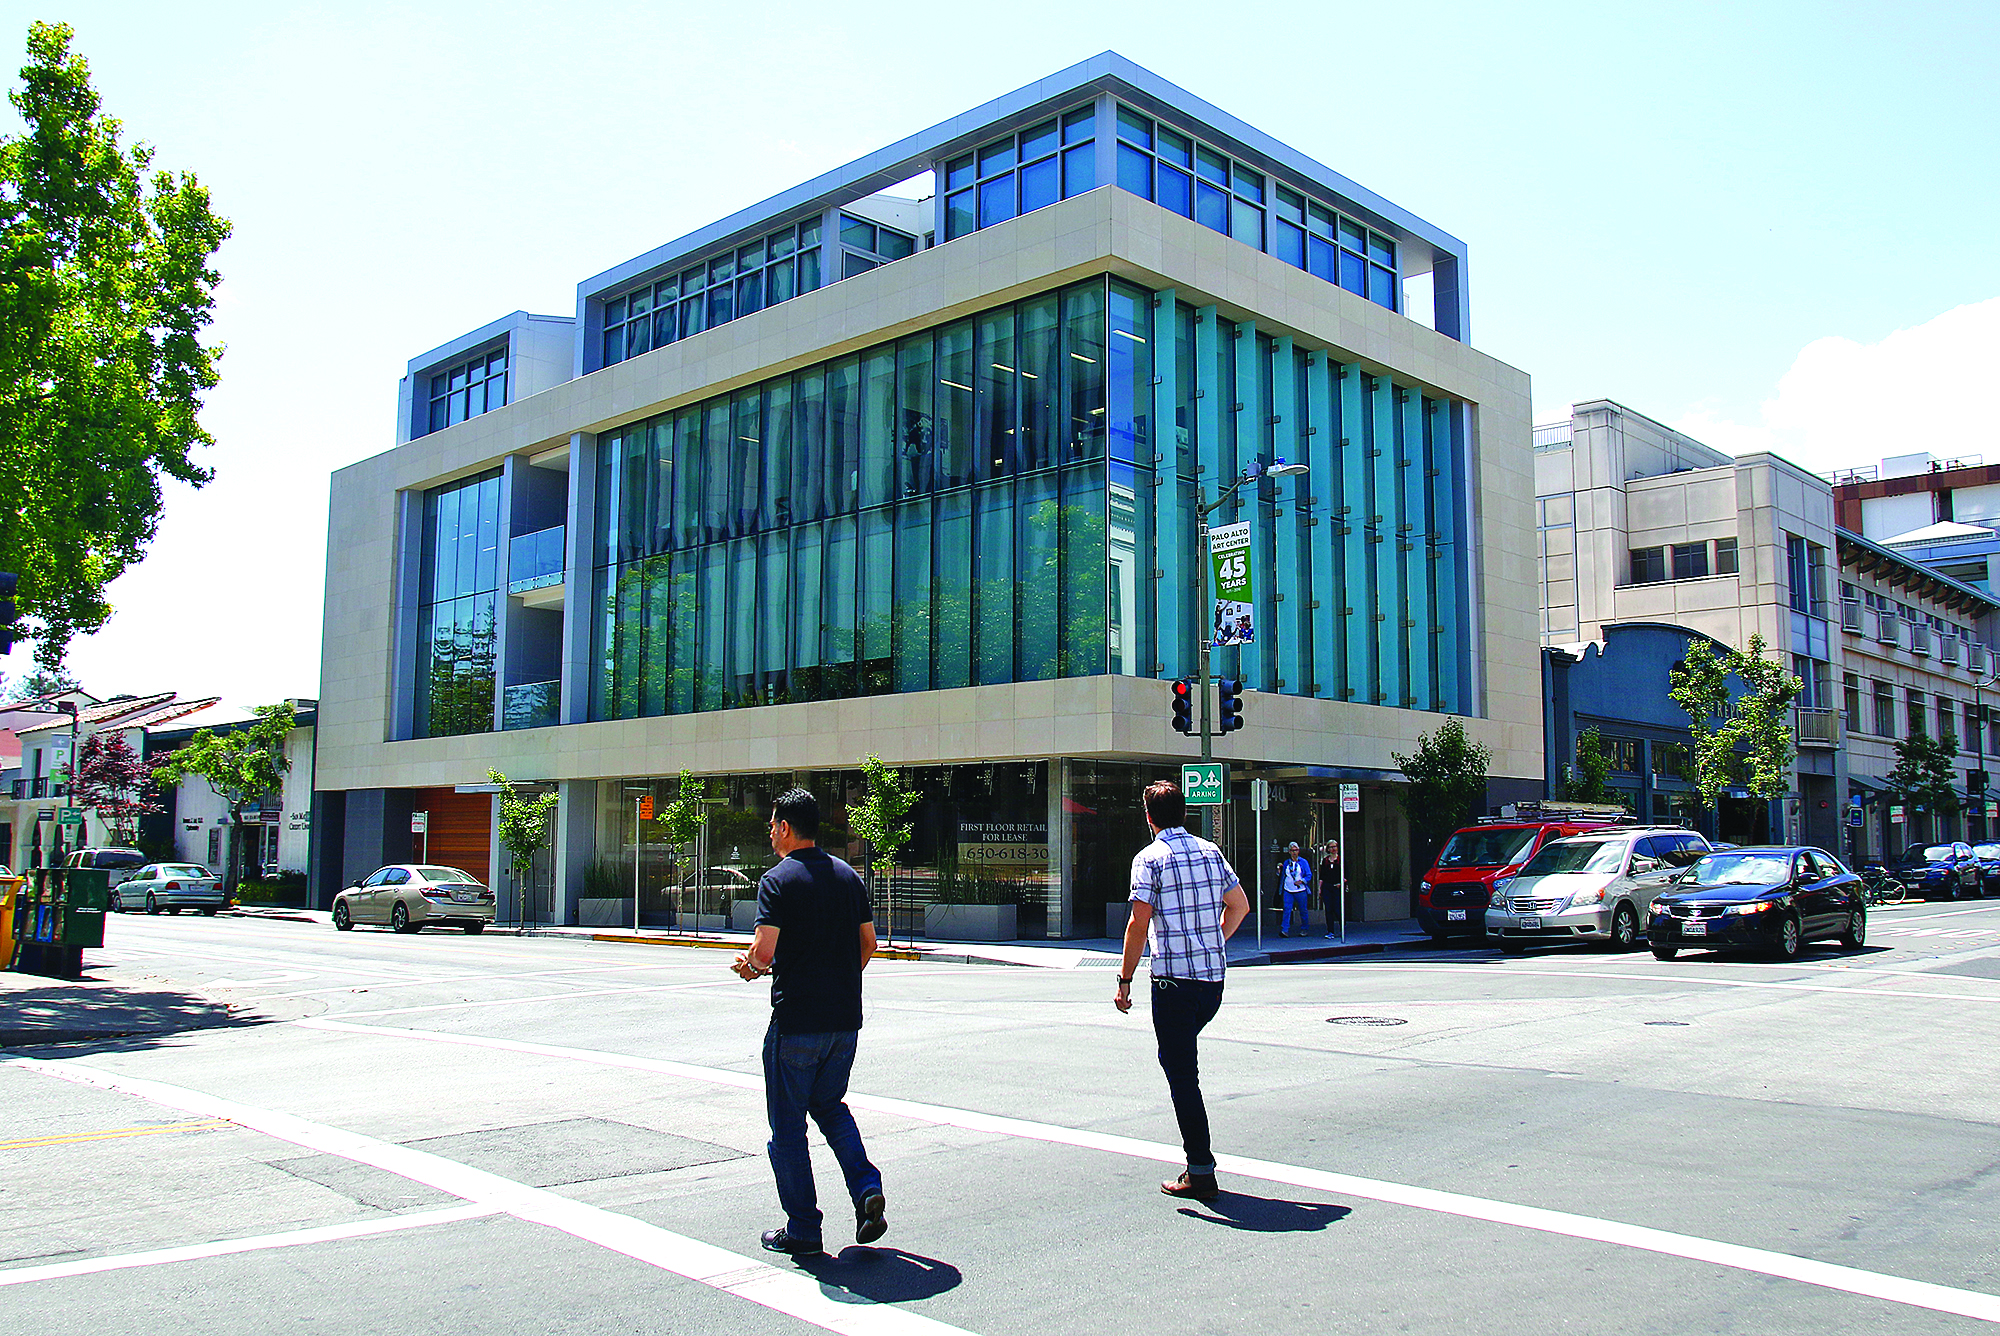 240 Hamilton Ave. is a 15,000-square-foot building in downtown Palo Alto that includes retail, office and residential space.